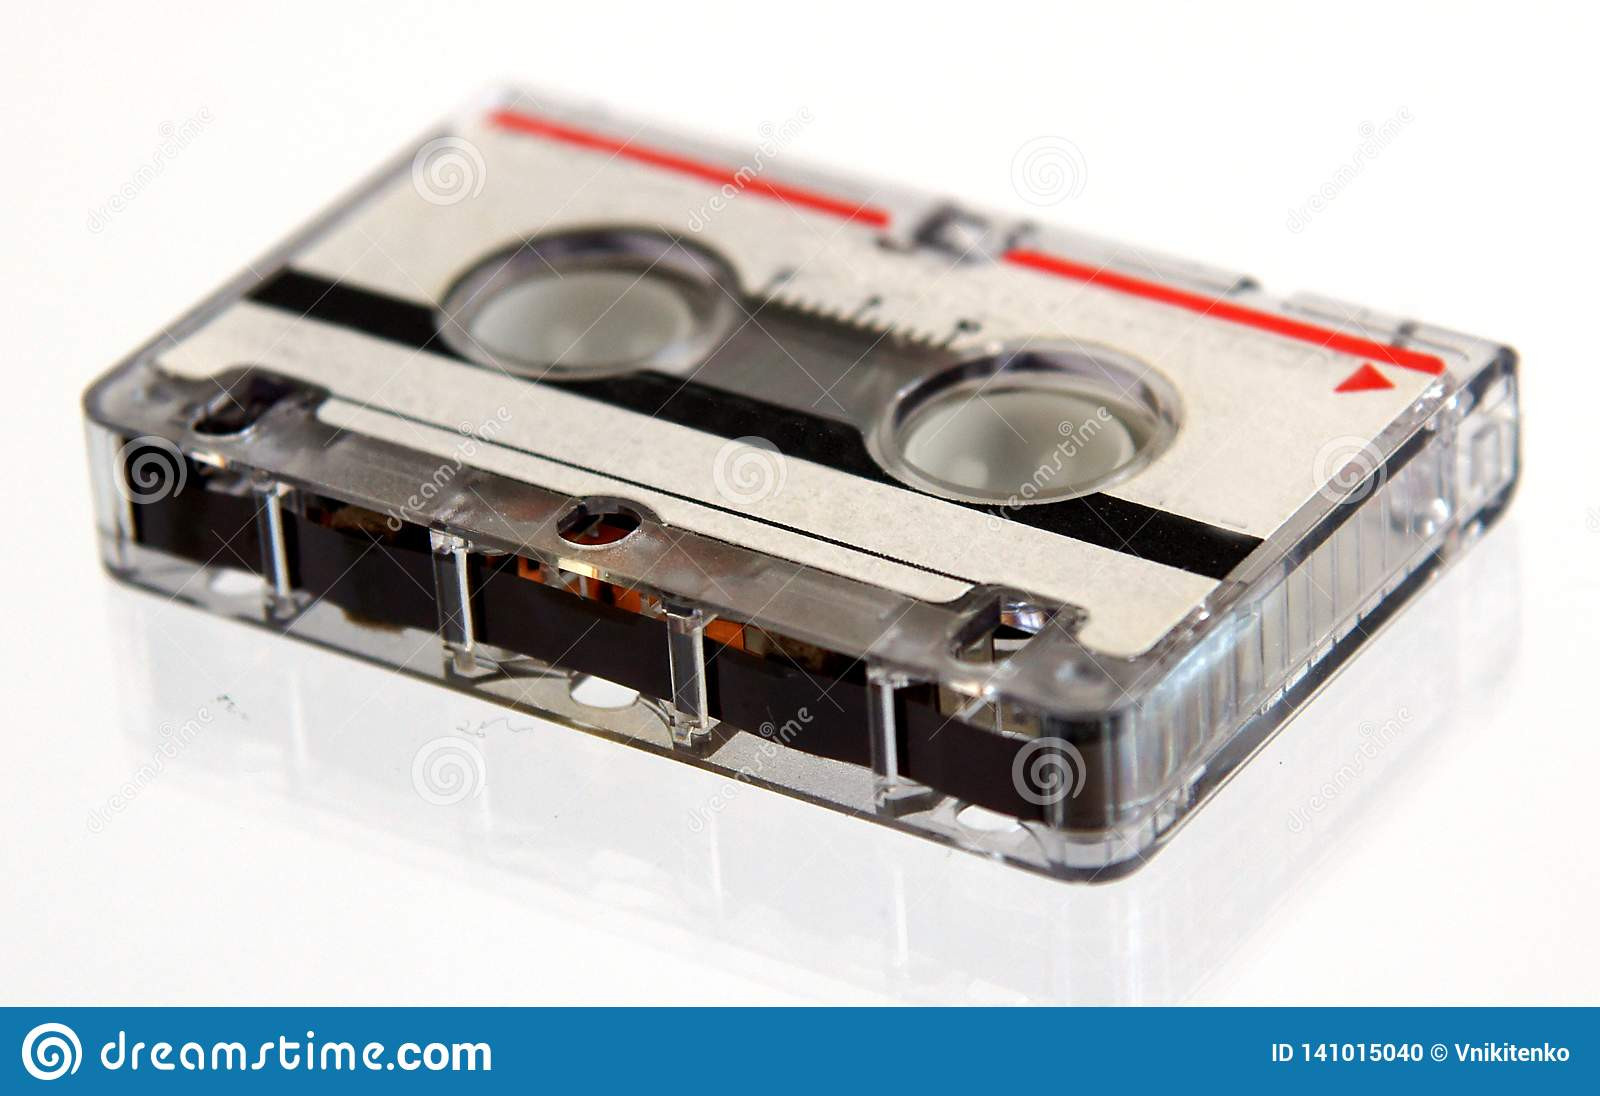 Microcassette for voice recorder